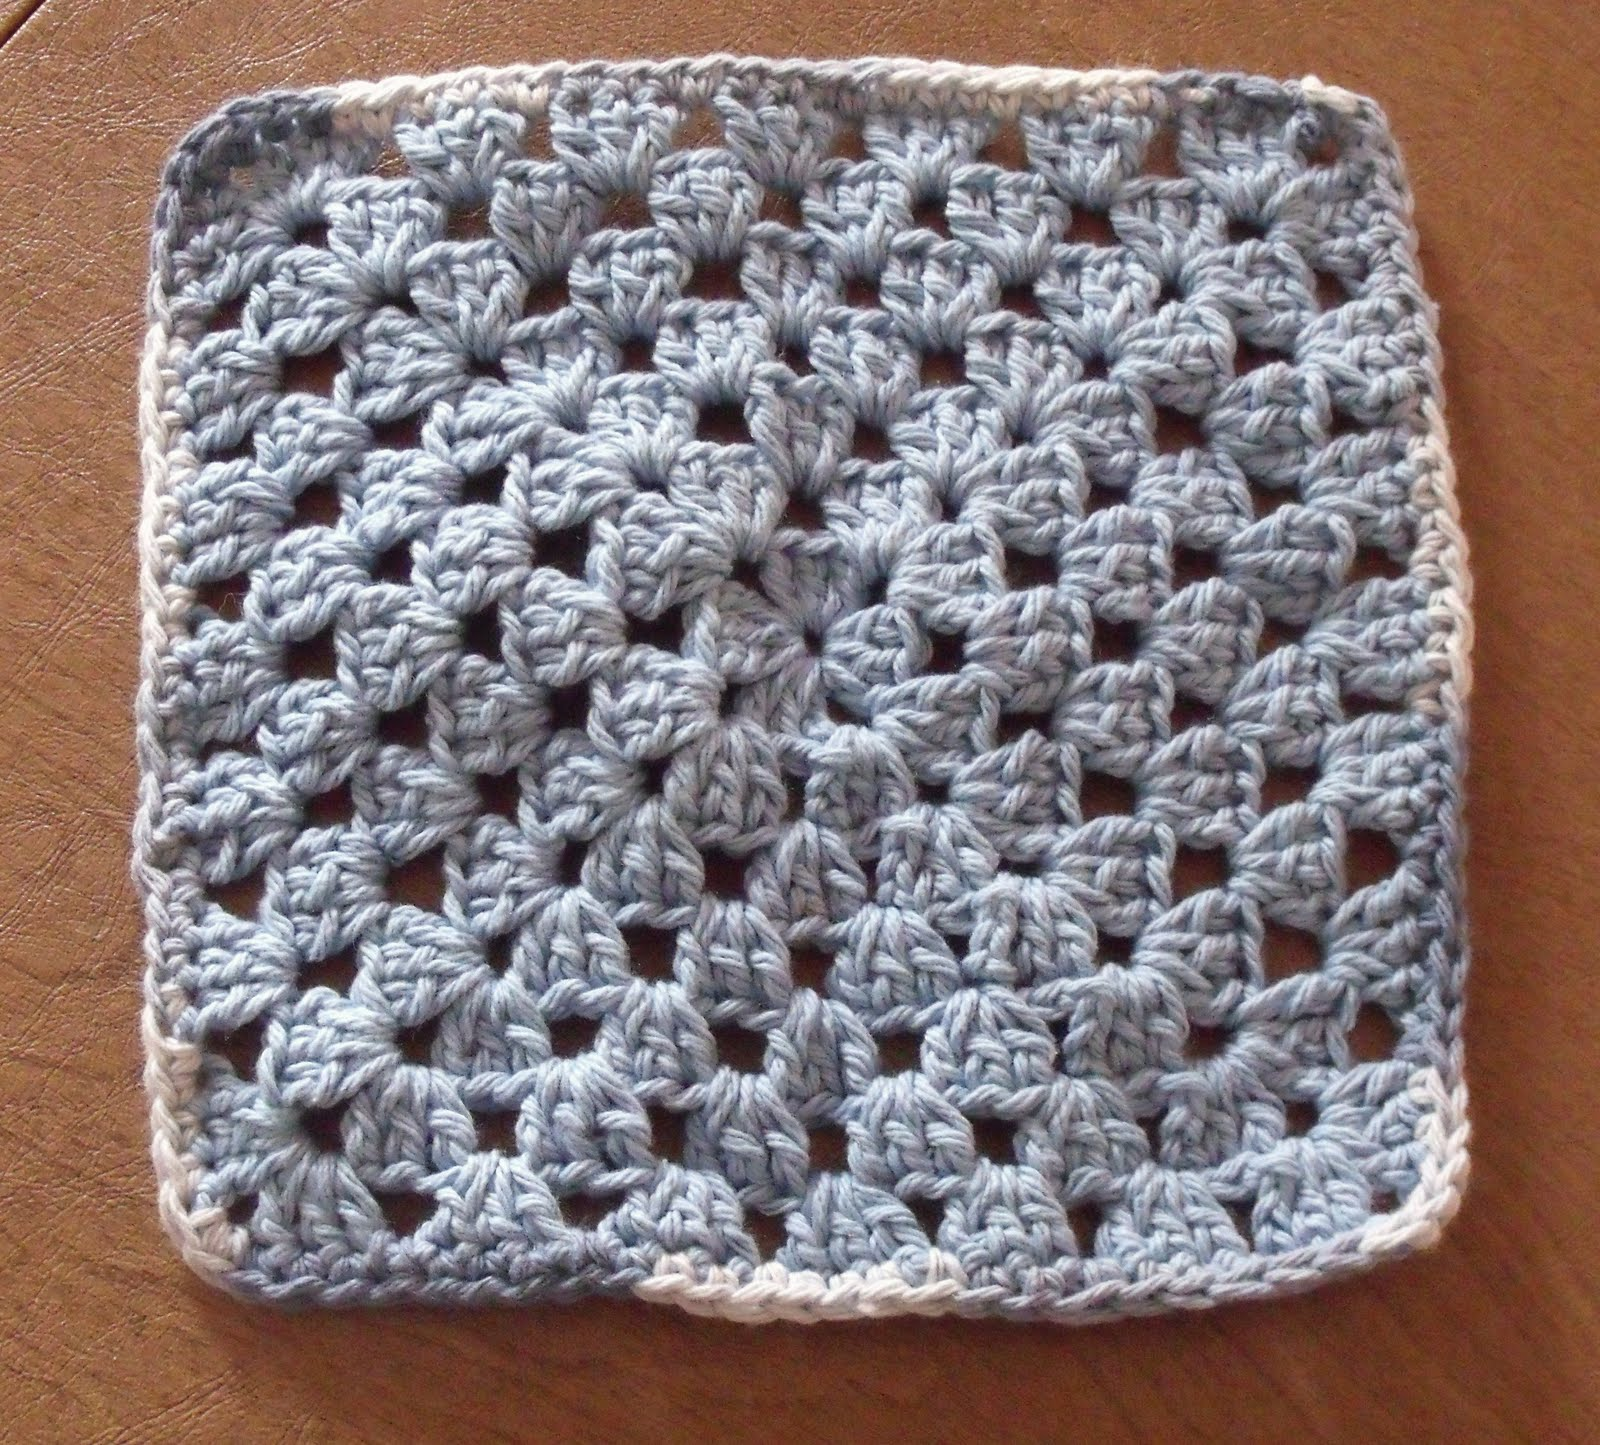 Baking, Crocheting and Sewing, Oh My!: Crochet Granny Squares ...